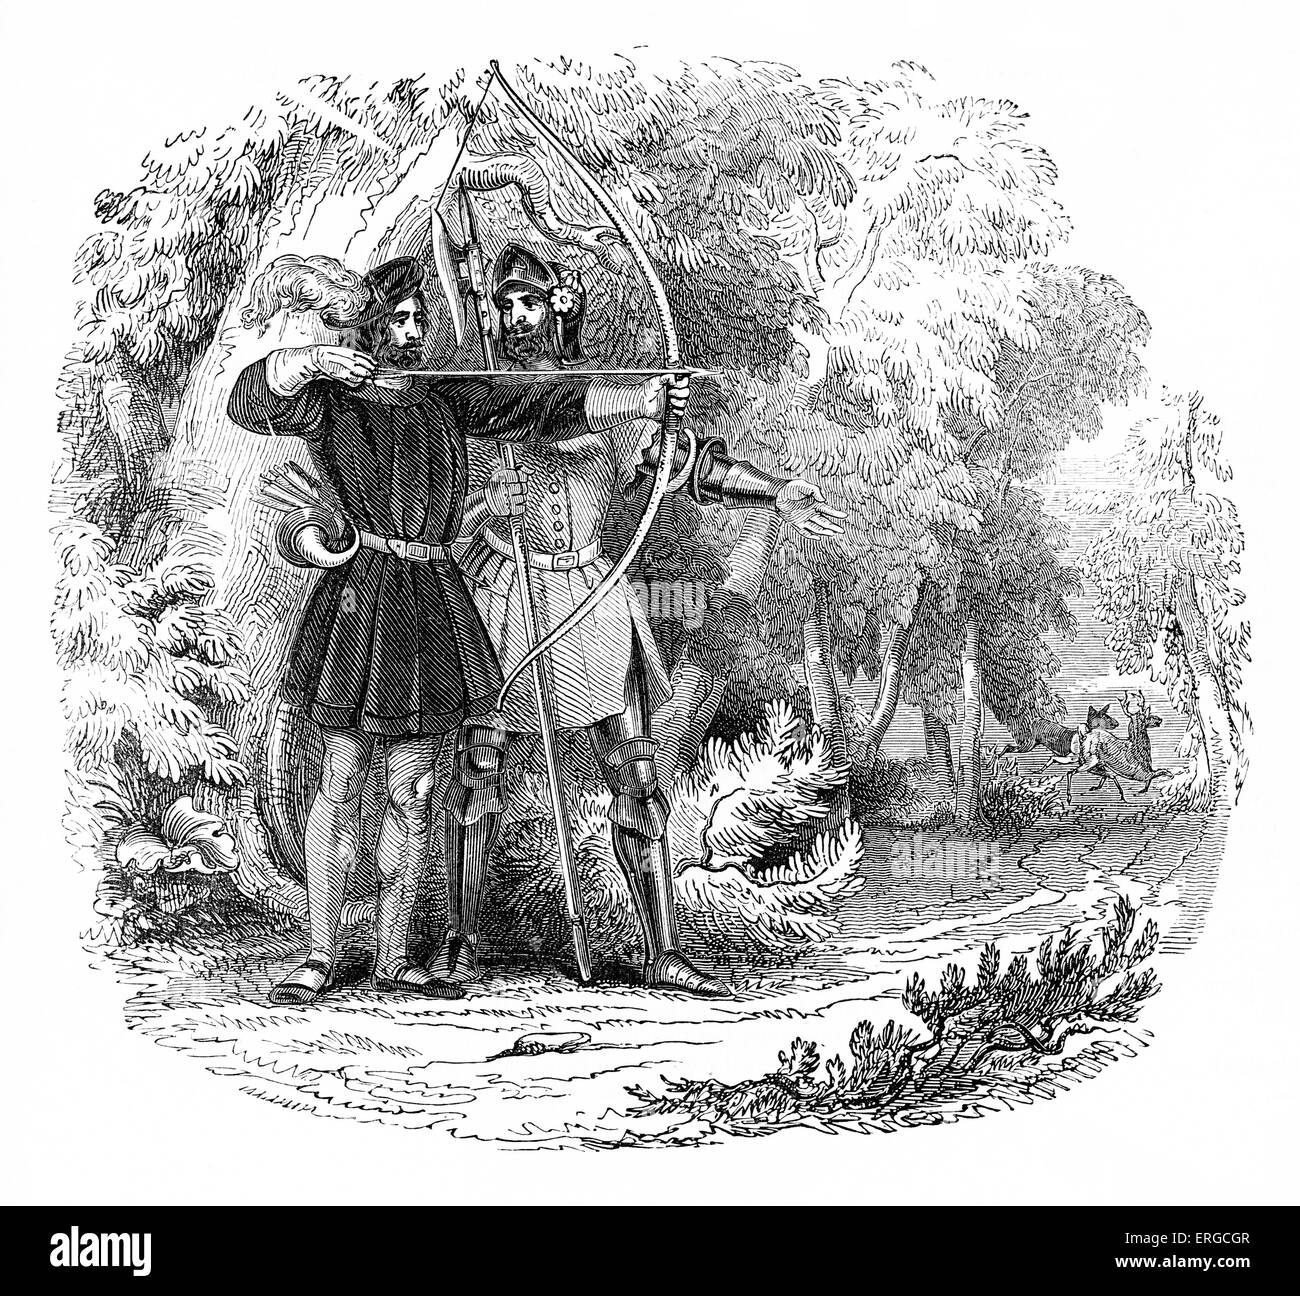 Robin Hood with Little John, using his bow and arrow in the Forest of Nottingham, England. - Stock Image